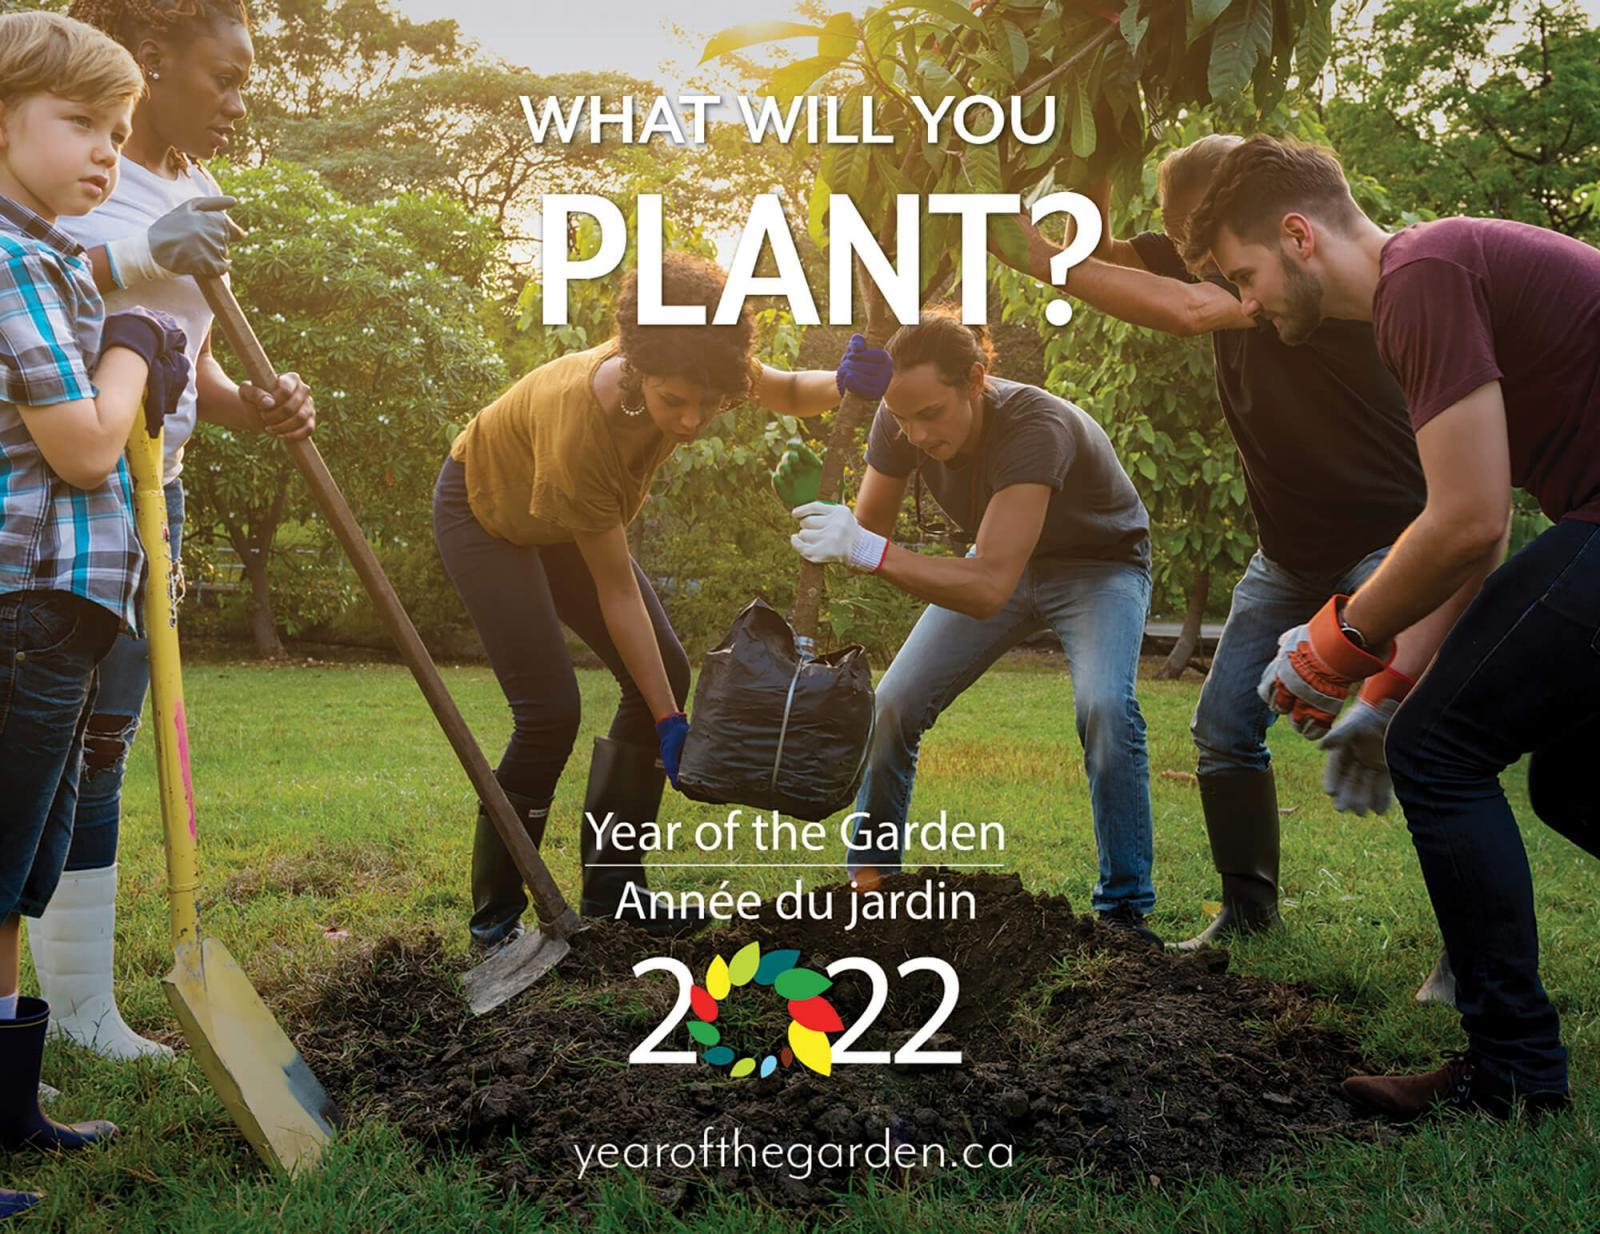 Year of the Garden 2022